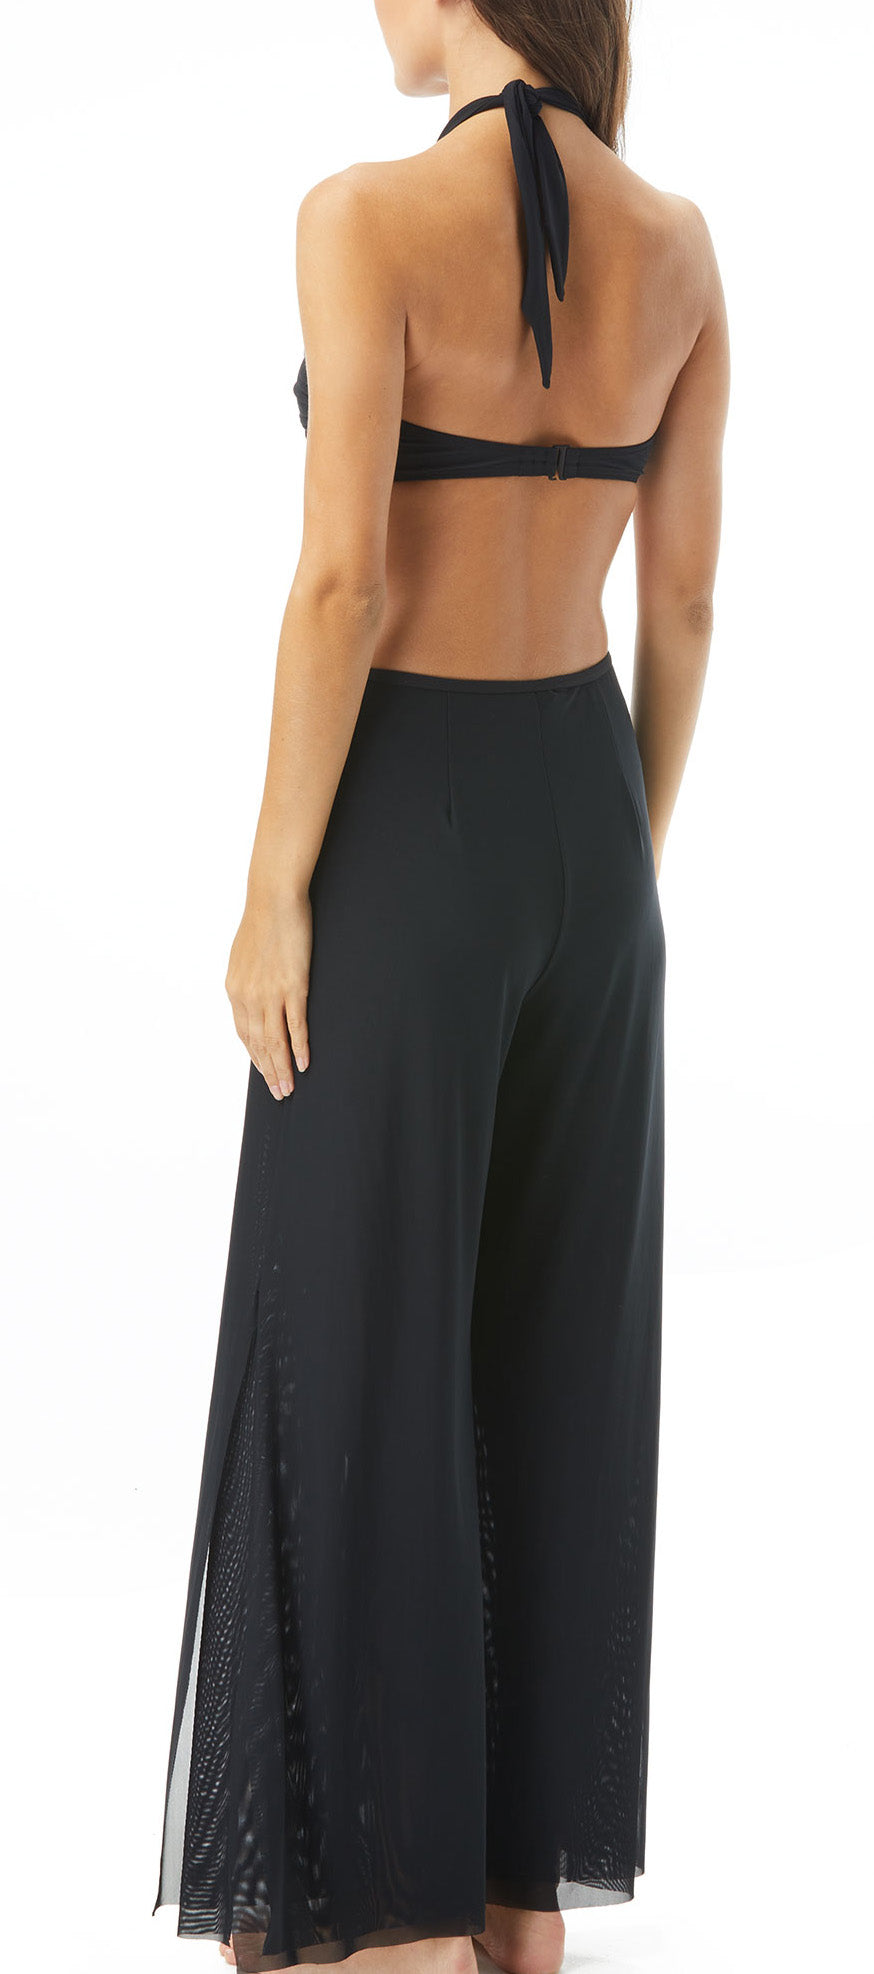 Elegant and effortless, the Carmen Marc Valvo Double Layer Wide Leg Mesh Cover Up Pants are perfect for day-to-night styling. The mid rise, easy fitting sheer pant features breathable mesh to keep you cool, an elastic waistband, and side slits creating a must-have resort-ready cover up.     Cover Up Pants Double Layered Mesh Wide Leg Fit Elastic Waistband Side Slits Hand wash cold, line dry Mesh Fabric: 94% Nylon/ 6% Spandex  Product Number: C1C891